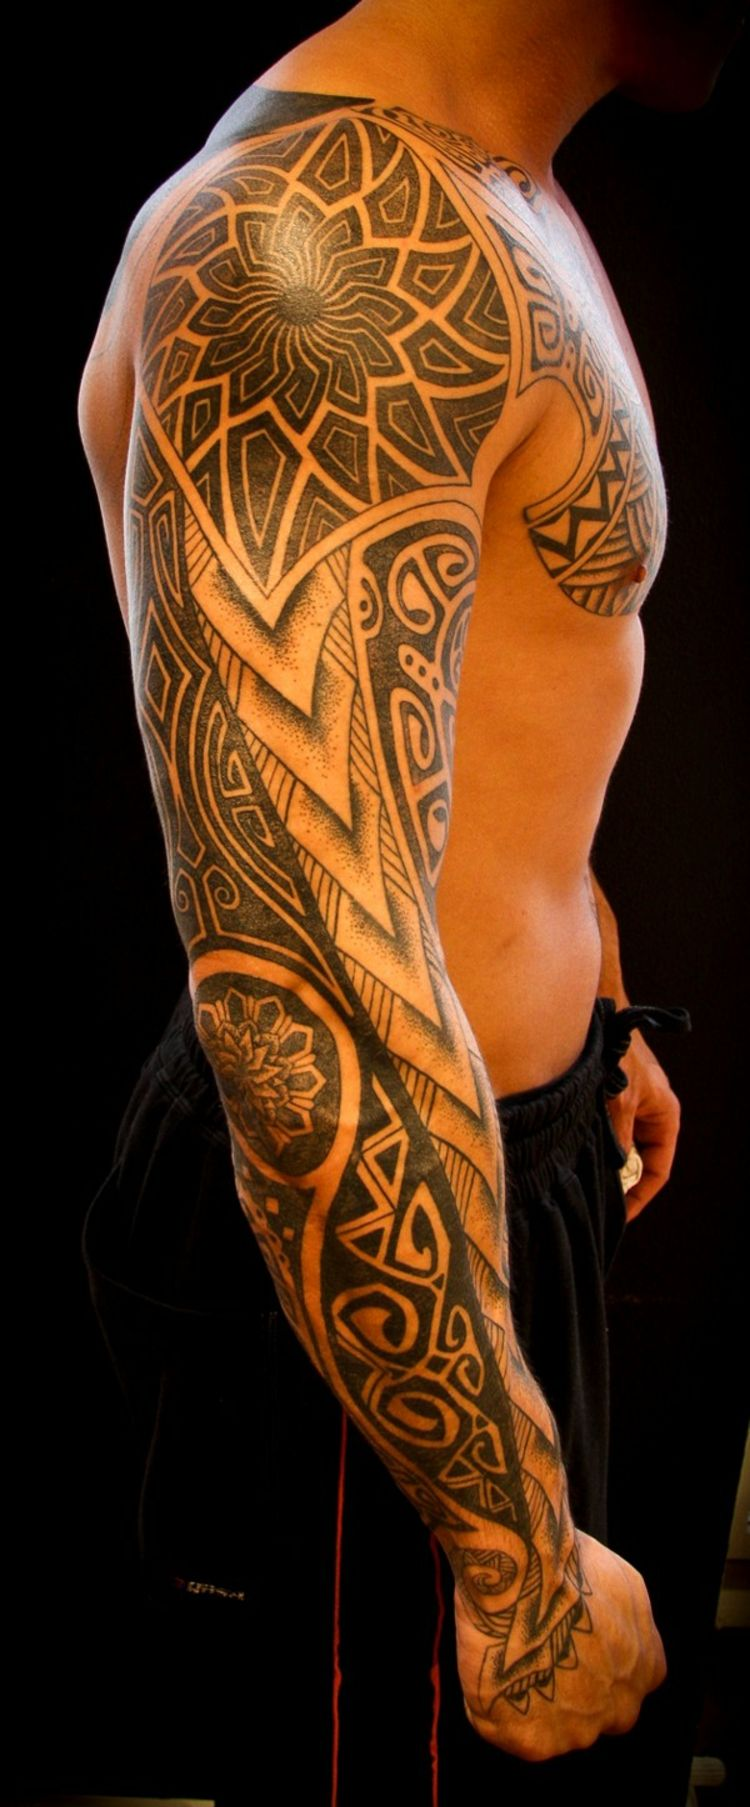 polynesische maori tattoos bedeutung der tribalsmotive tattoo pinterest tattoo vorlagen. Black Bedroom Furniture Sets. Home Design Ideas